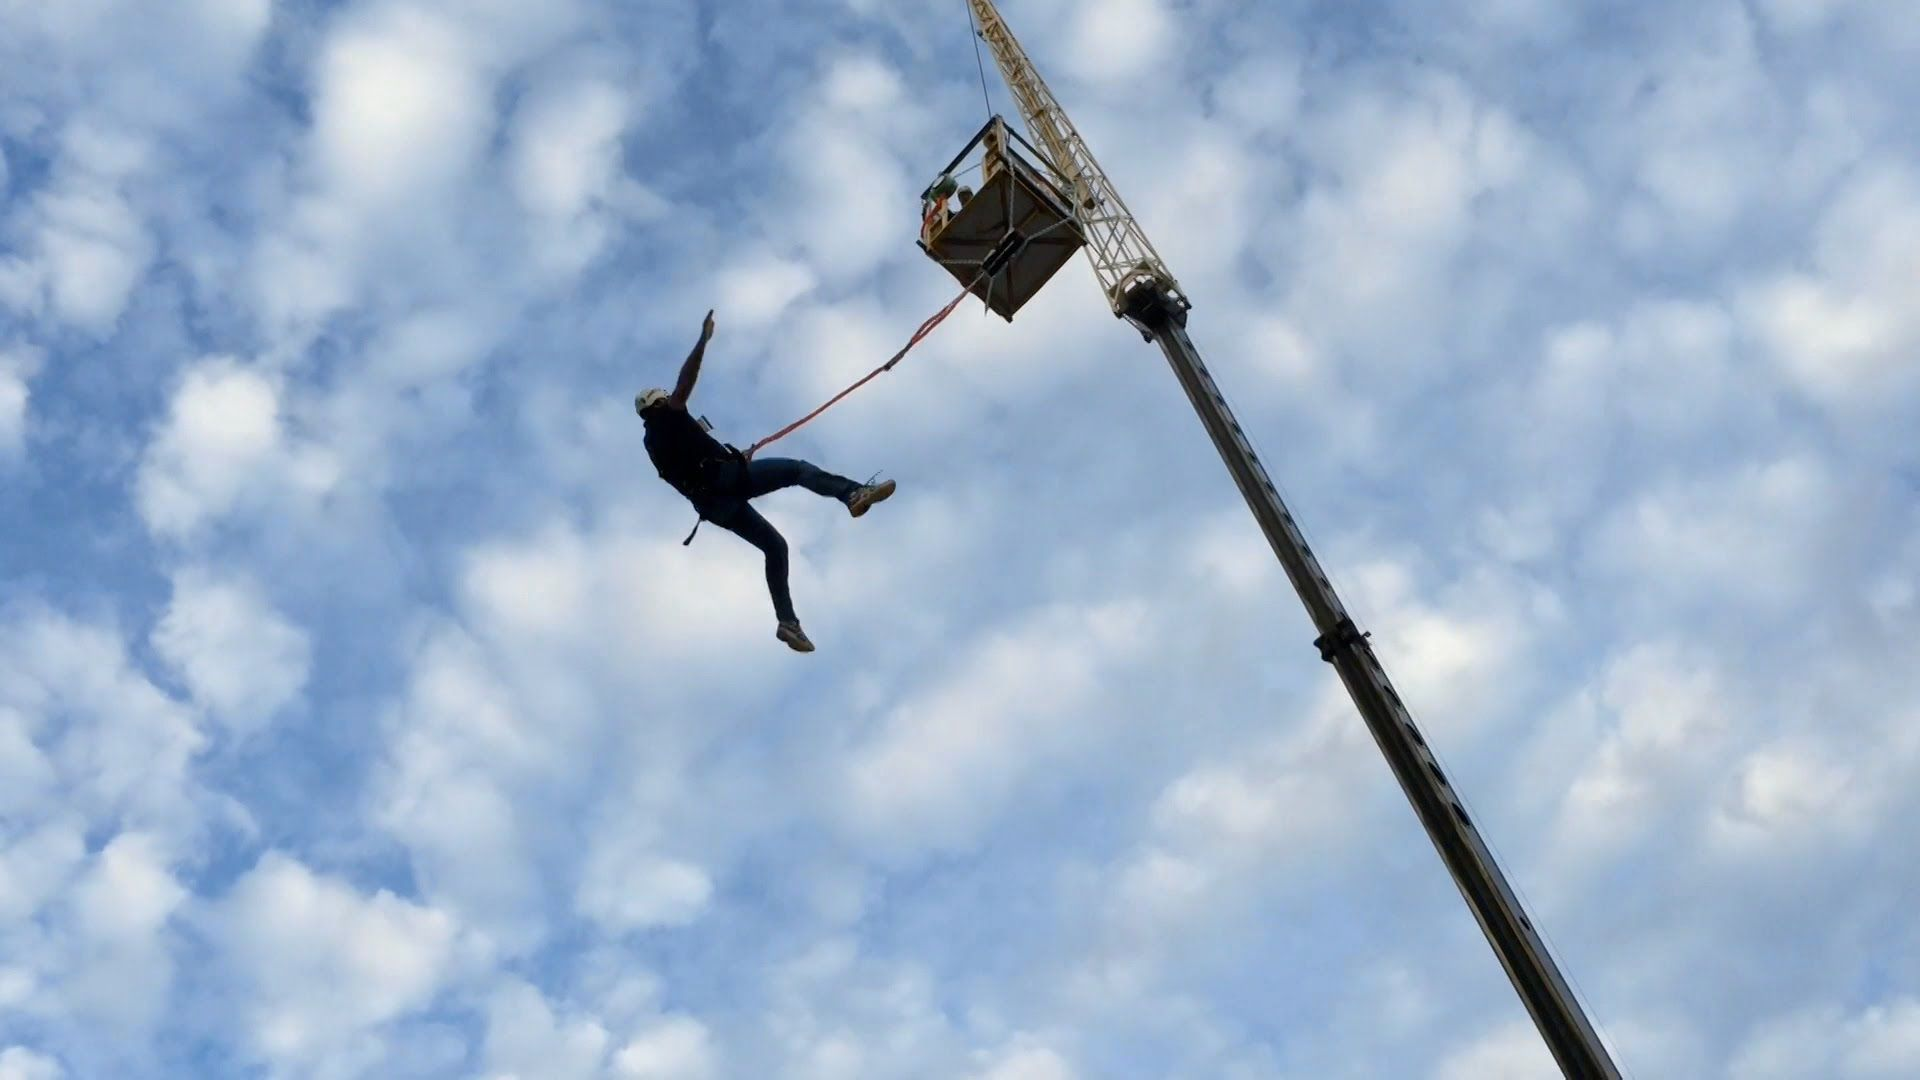 The Crew From Theme Park Review Gives The Flightline Commercial Free Fall Device A Try From 70 Feet Up In The Air F Fall Attractions Free Falling Fall Video